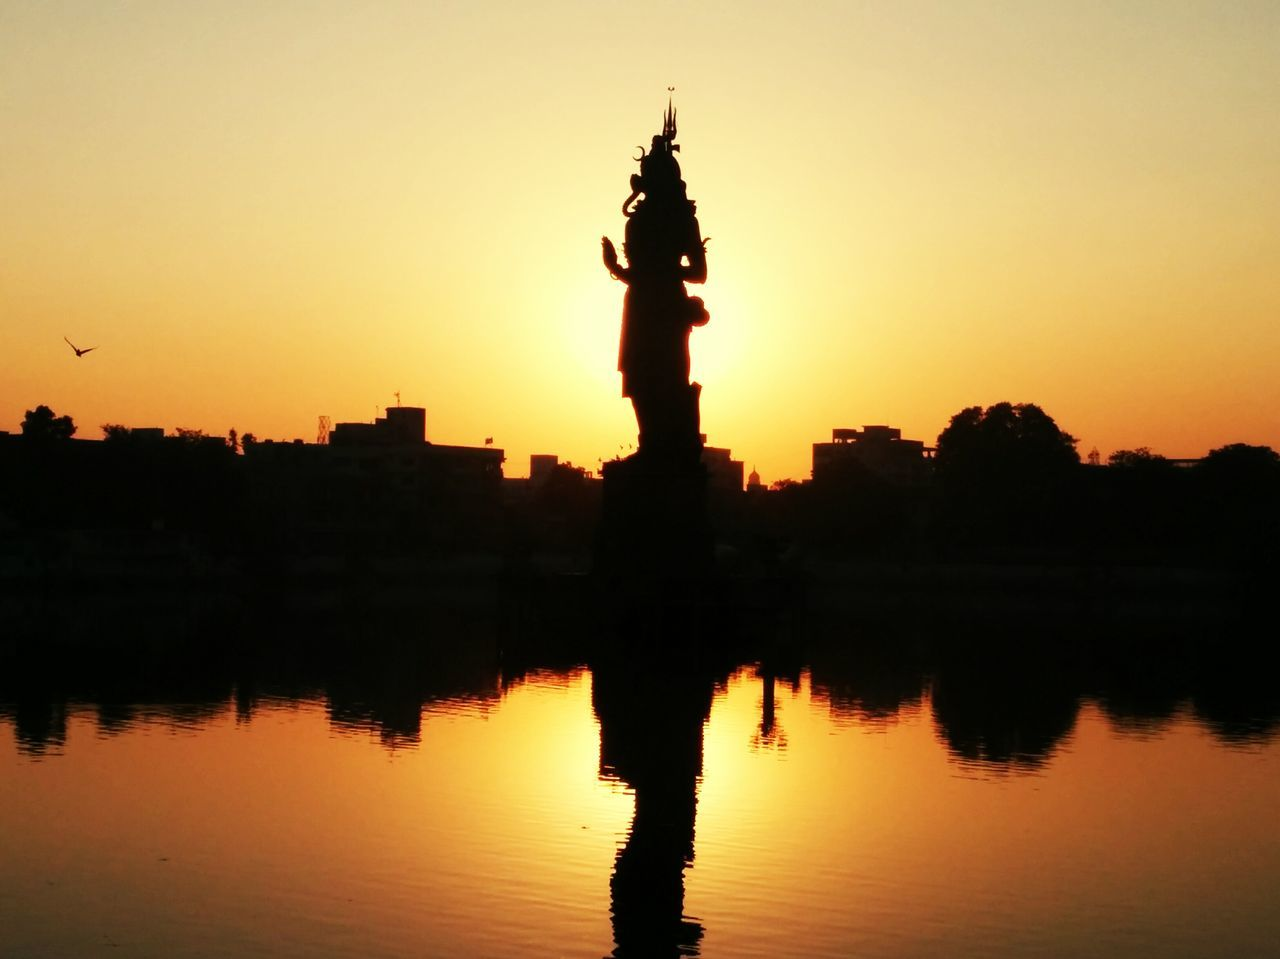 sunset, silhouette, reflection, orange color, architecture, statue, travel destinations, water, built structure, sky, travel, building exterior, beauty in nature, outdoors, lake, sculpture, no people, nature, scenics, gold colored, city, tree